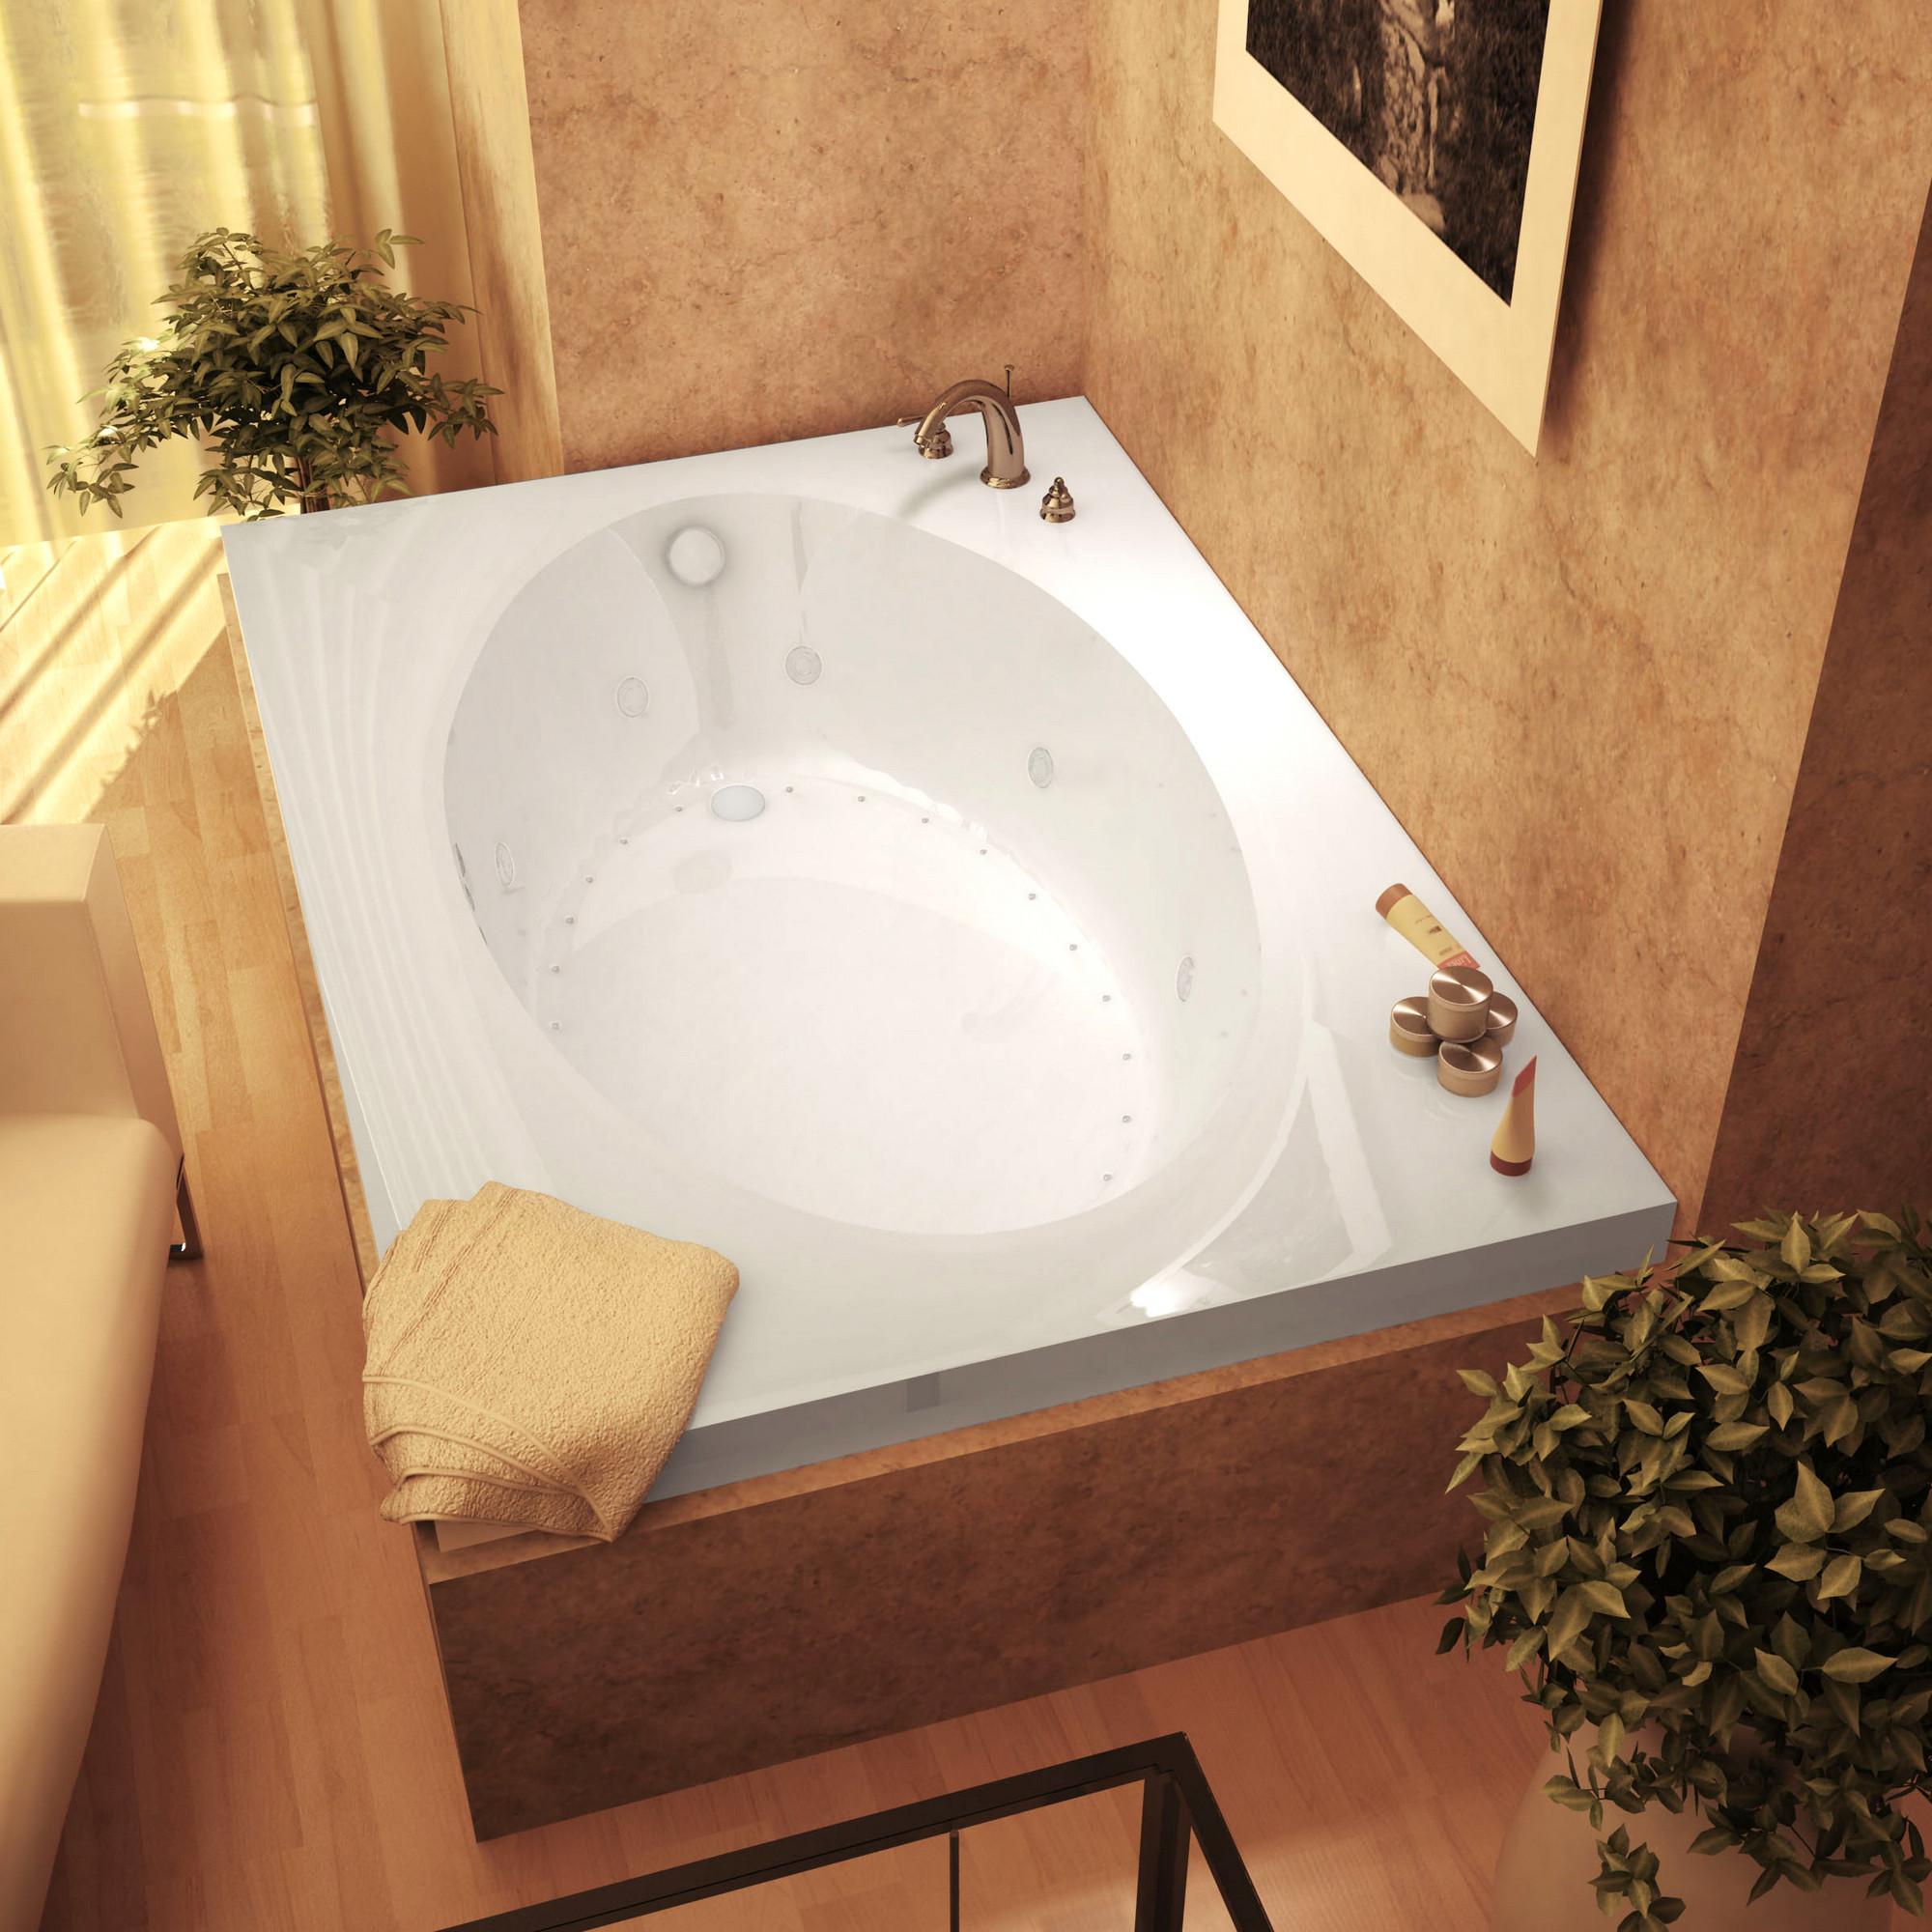 MediTub 4272VCDR Atlantis Vogue Air & Whirlpool Jetted Tub With Right Pump